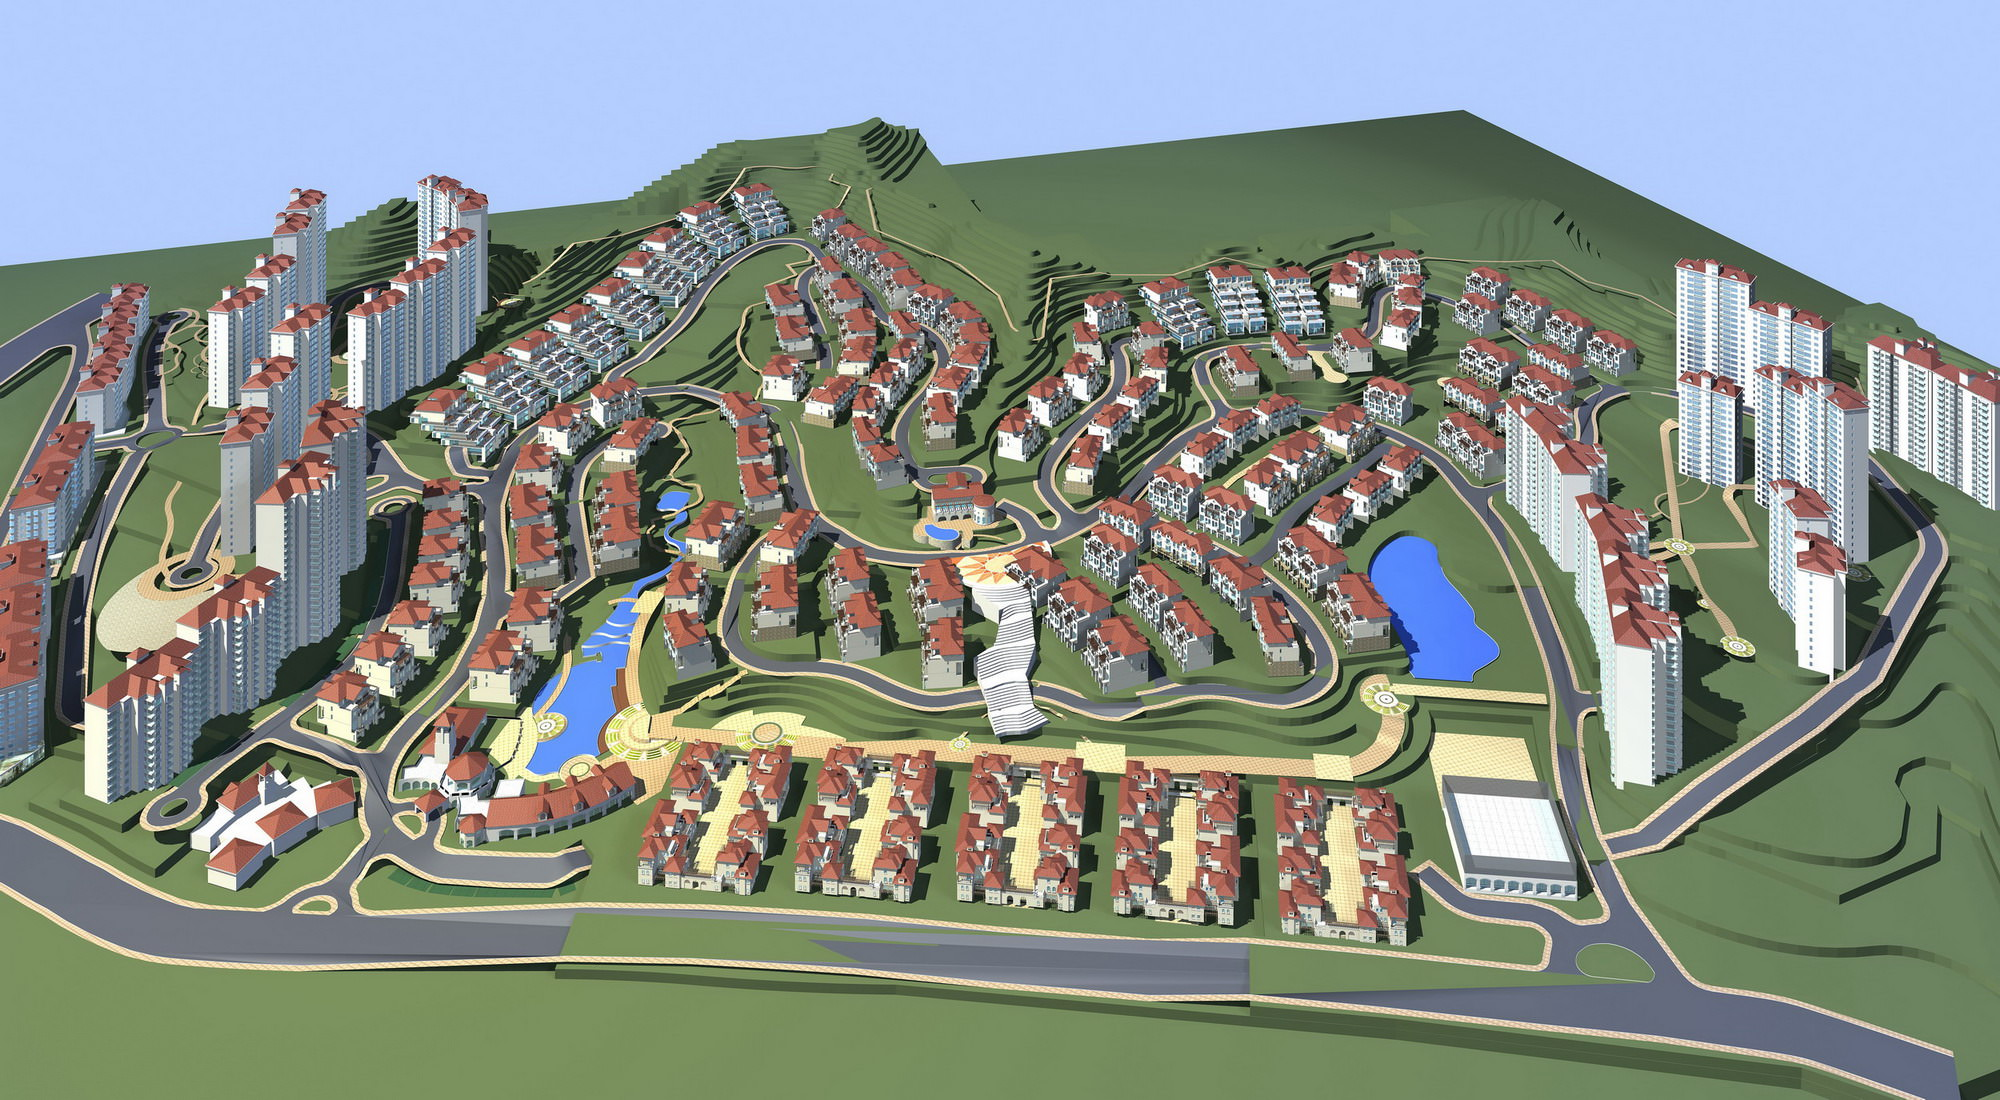 3d model town layout with buildings | cgtrader